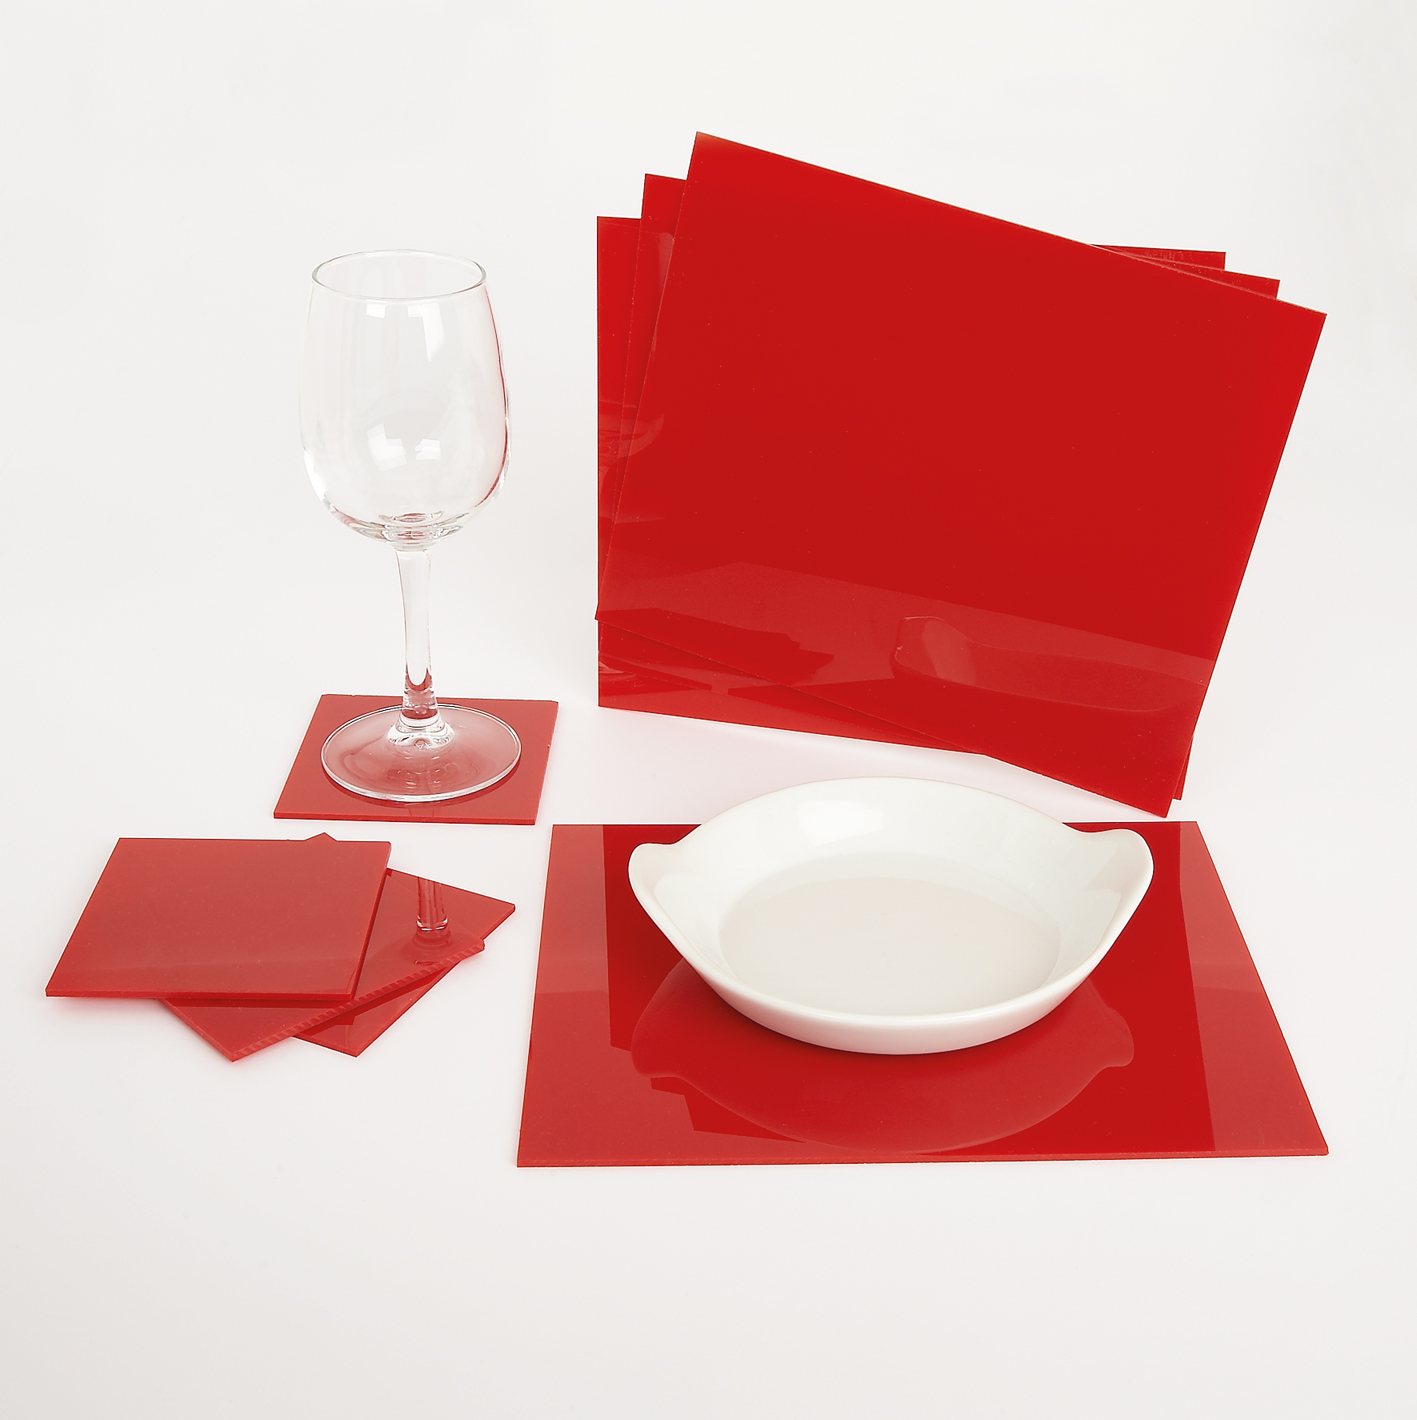 3mm acrylic placemats and coasters